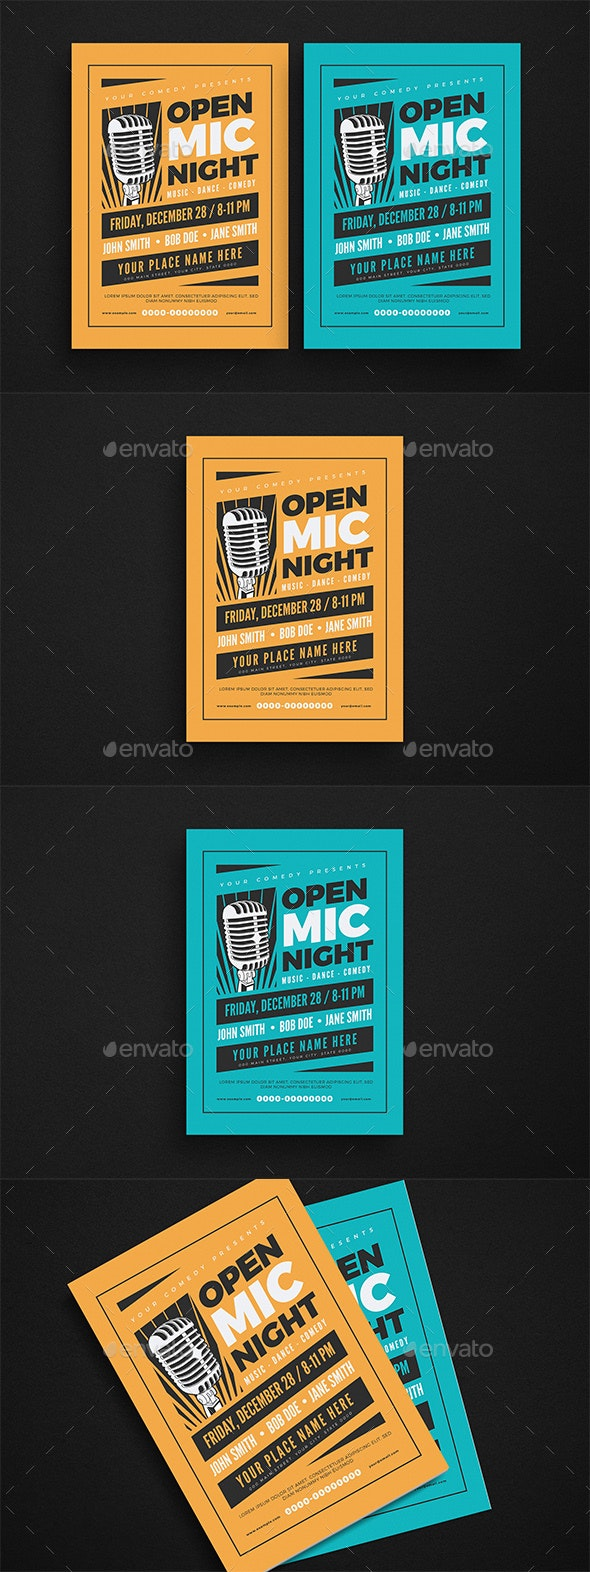 Open Mic Night Event Flyer - Events Flyers